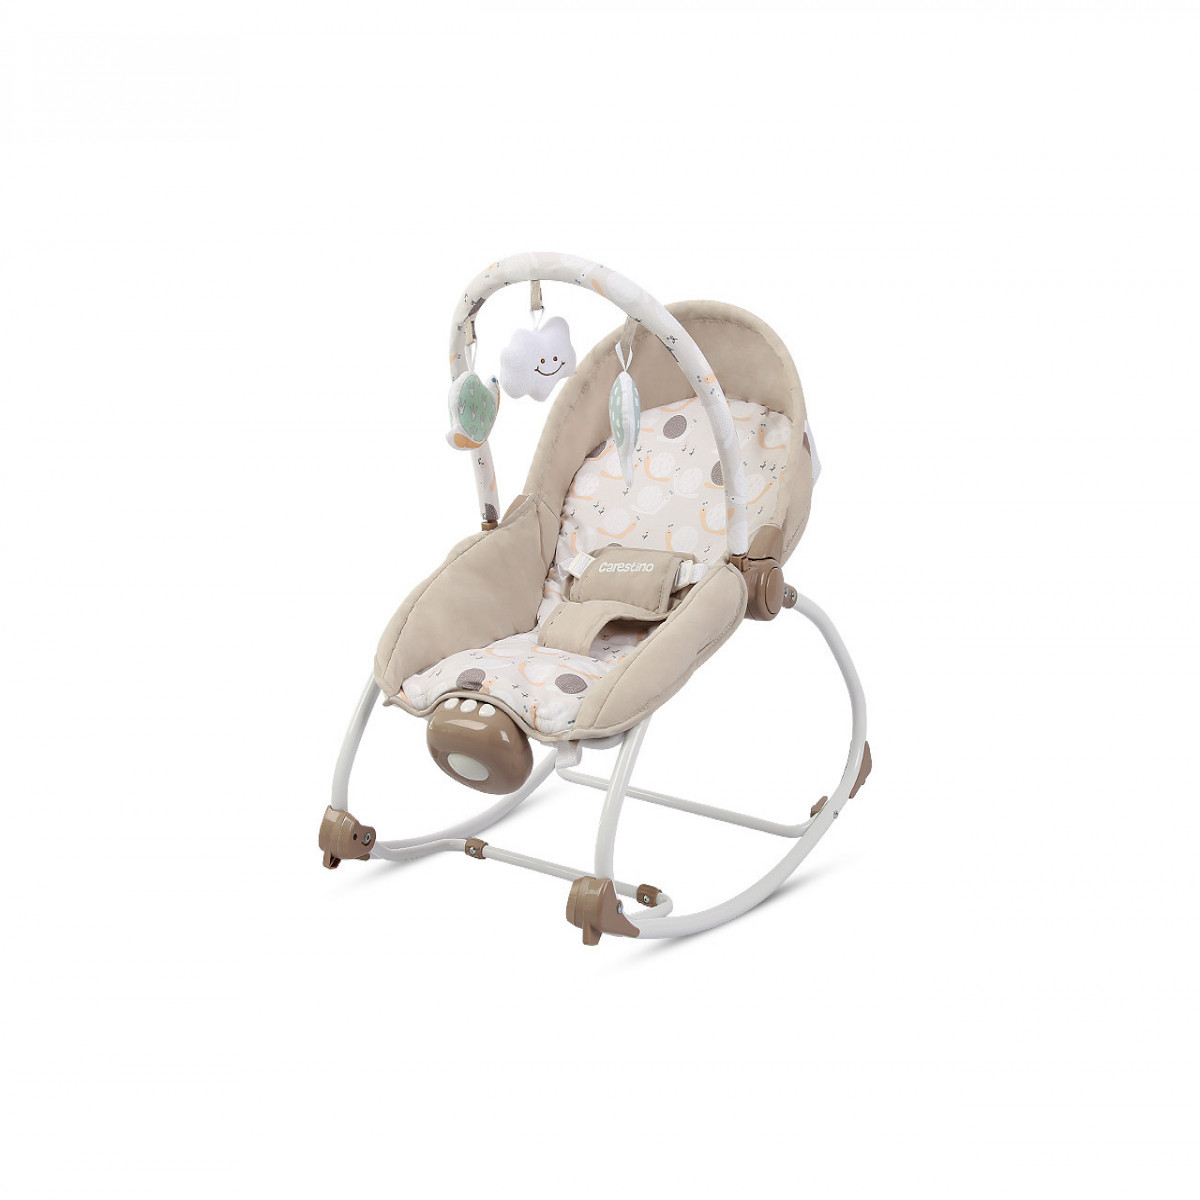 Mecedora musical Carestino beige